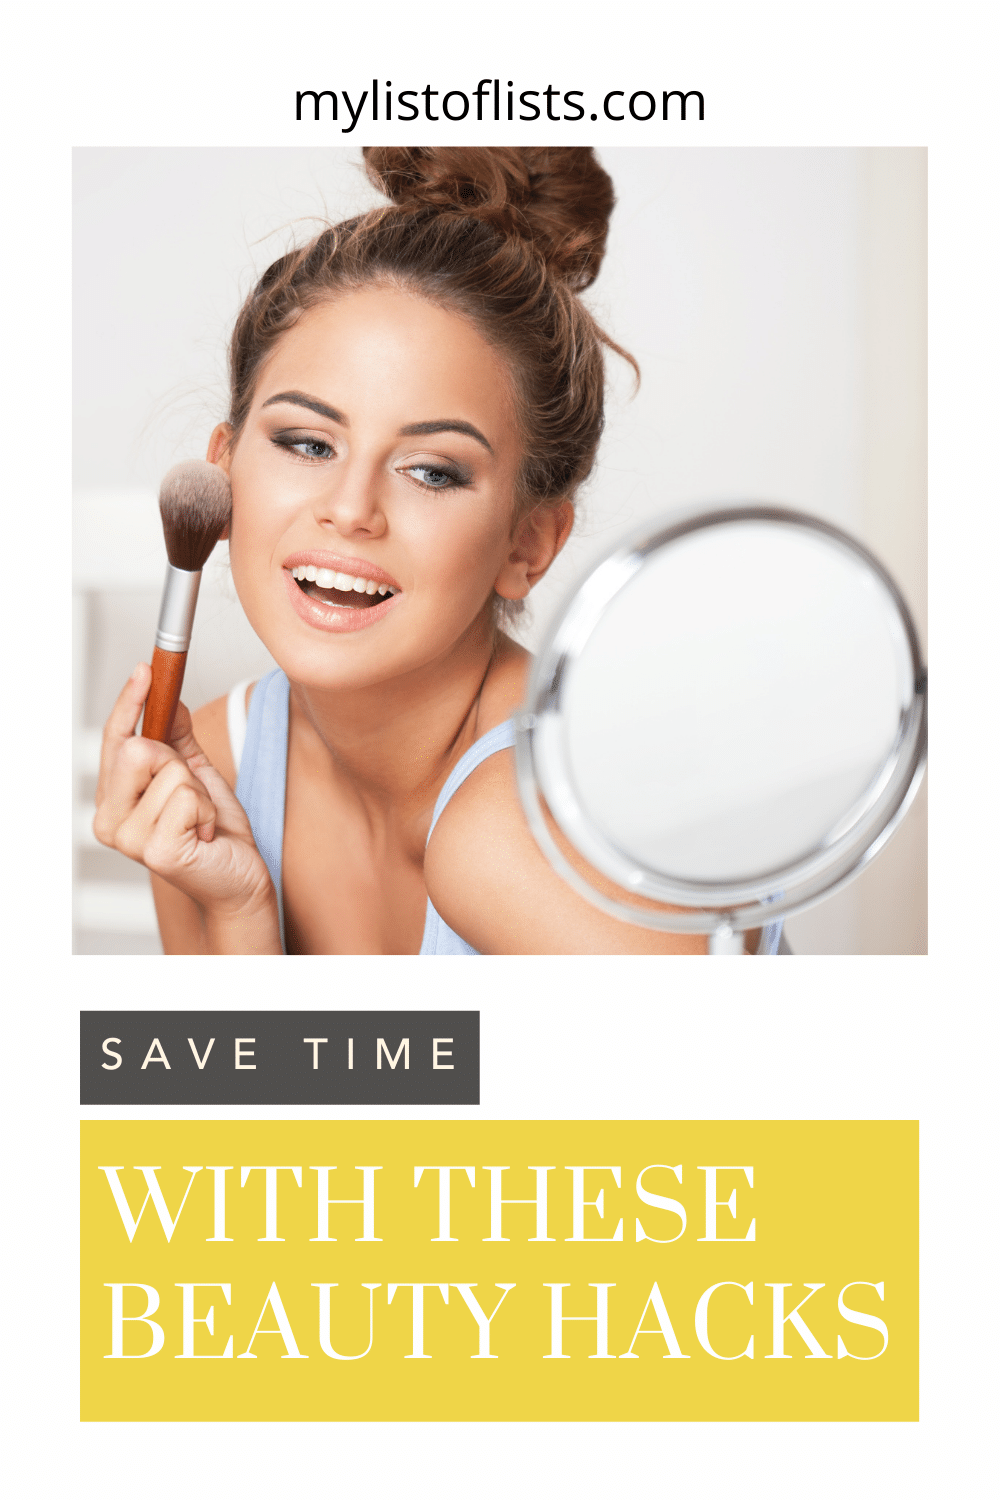 Mylistoflists.com will make you more efficient in all you do. Find tons of simple hacks to save more time. Spend less time on your morning routine with these clever beauty tips you absolutely need to know!